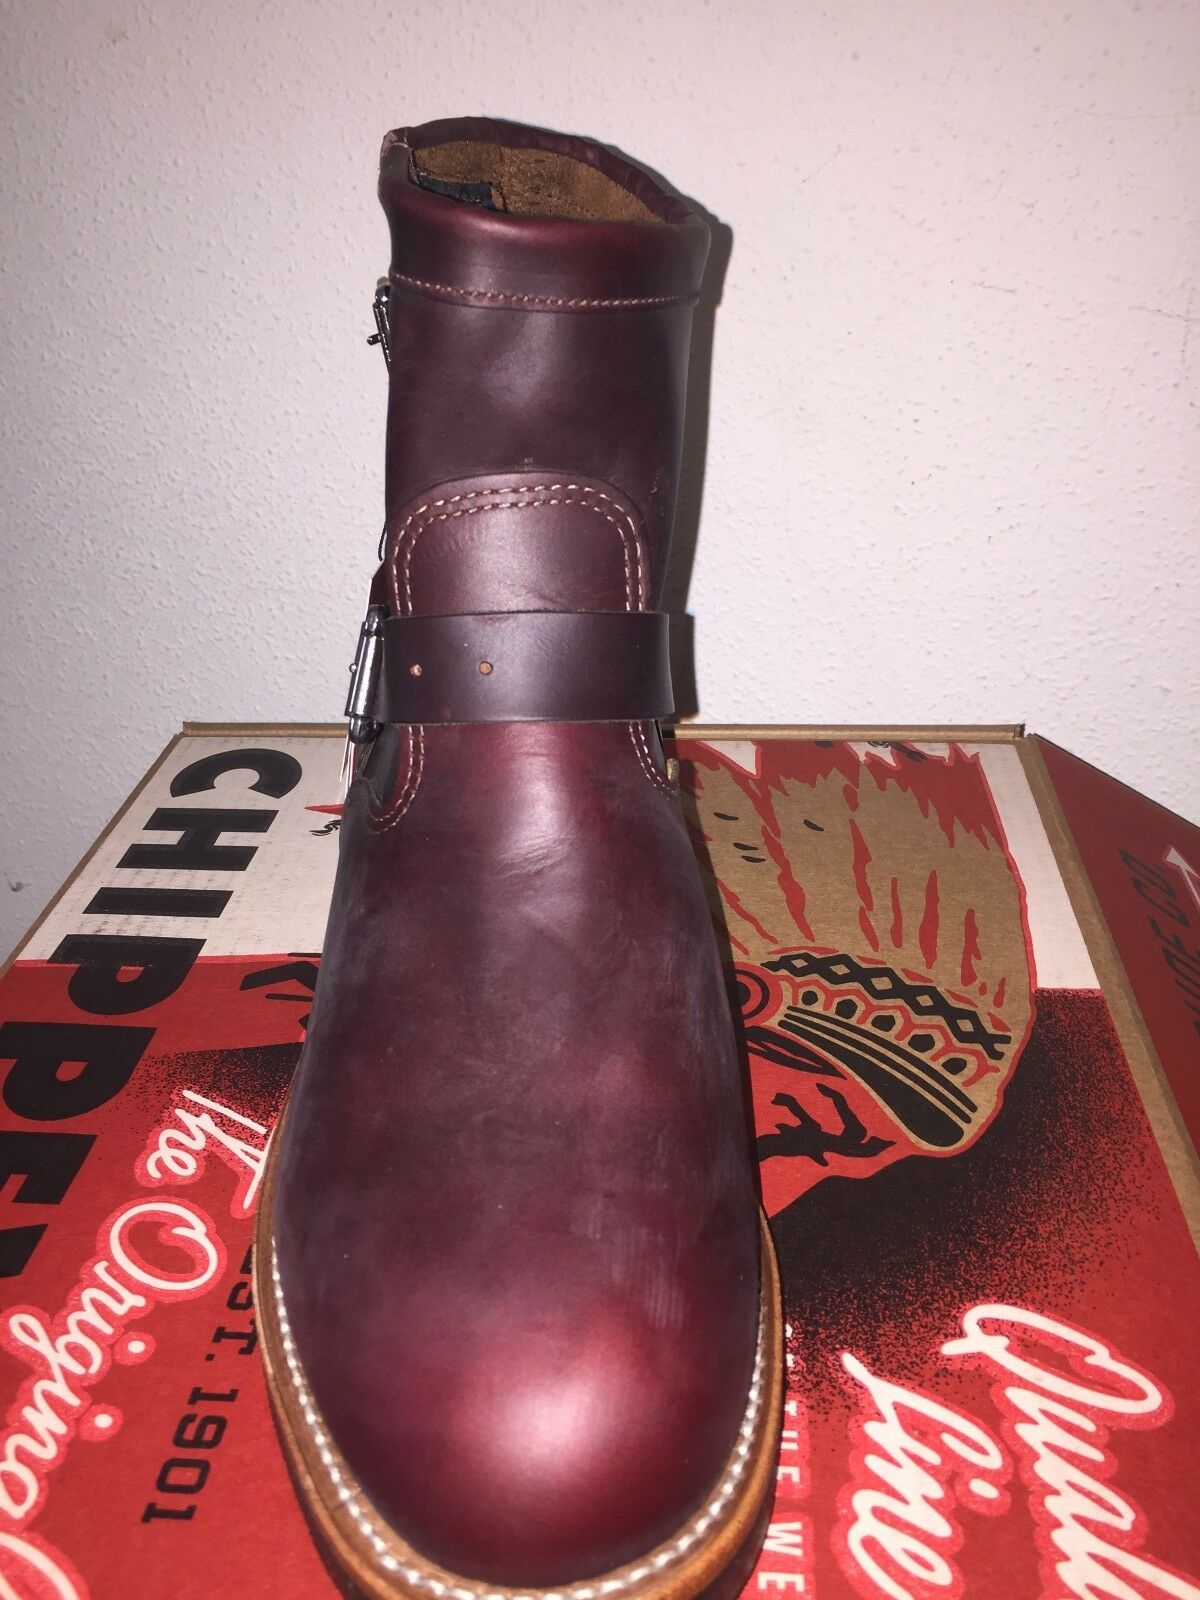 Engineer boots men's 11 E Chippewa Cognac Cognac Cognac or Blk $395 each pr da22f6